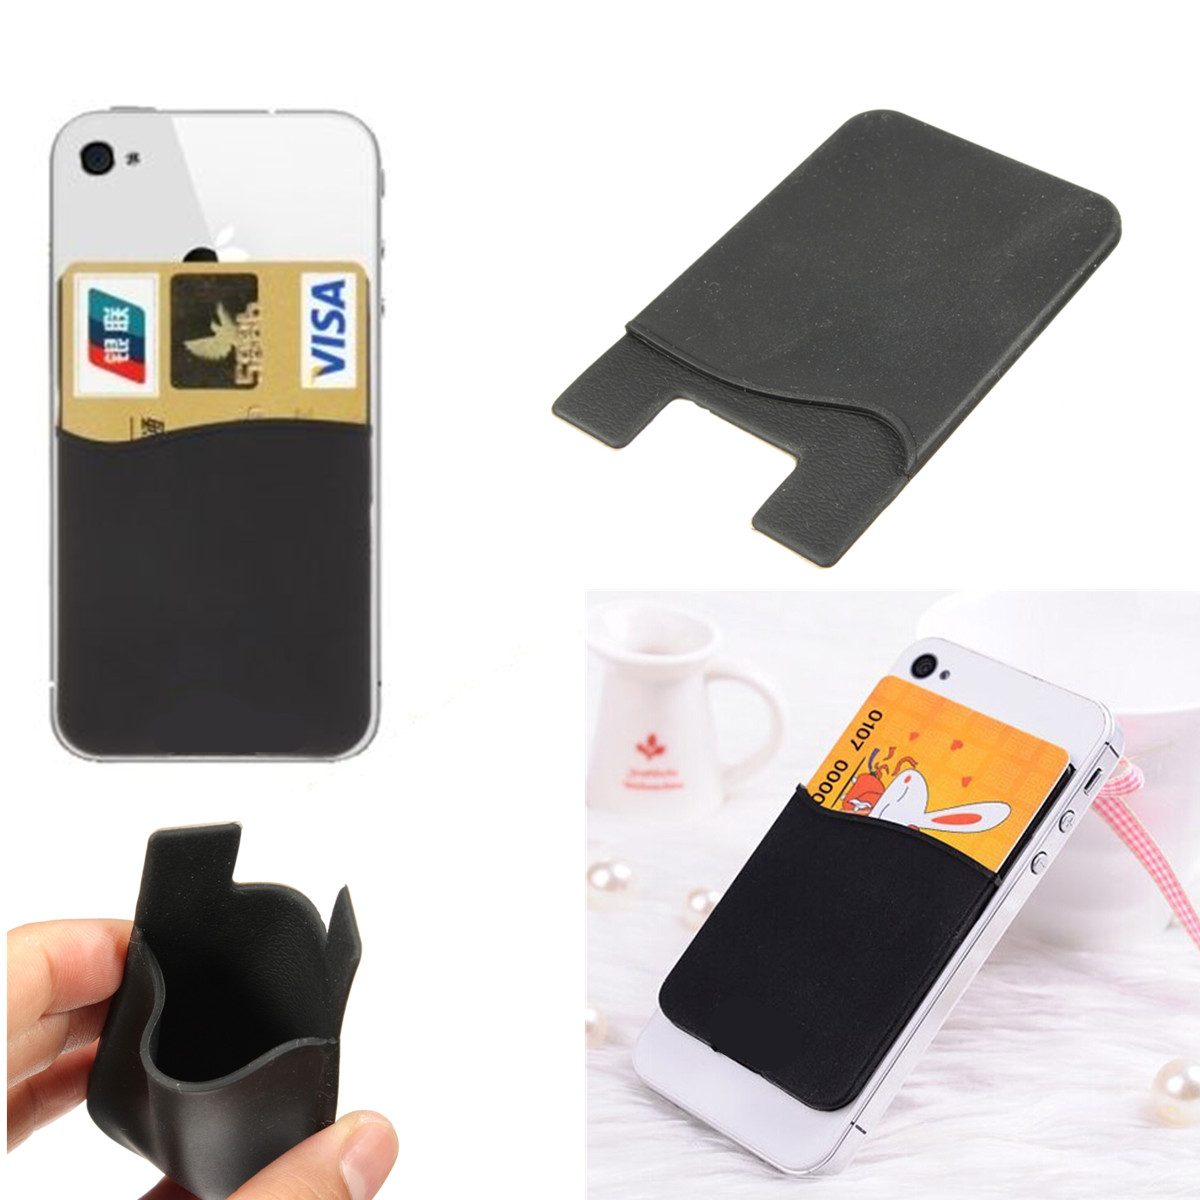 factory authentic 36f05 aa74a Silicone Smart Wallet Credit Card Cash Stick Adhesive Holder Case For Phone    eBay